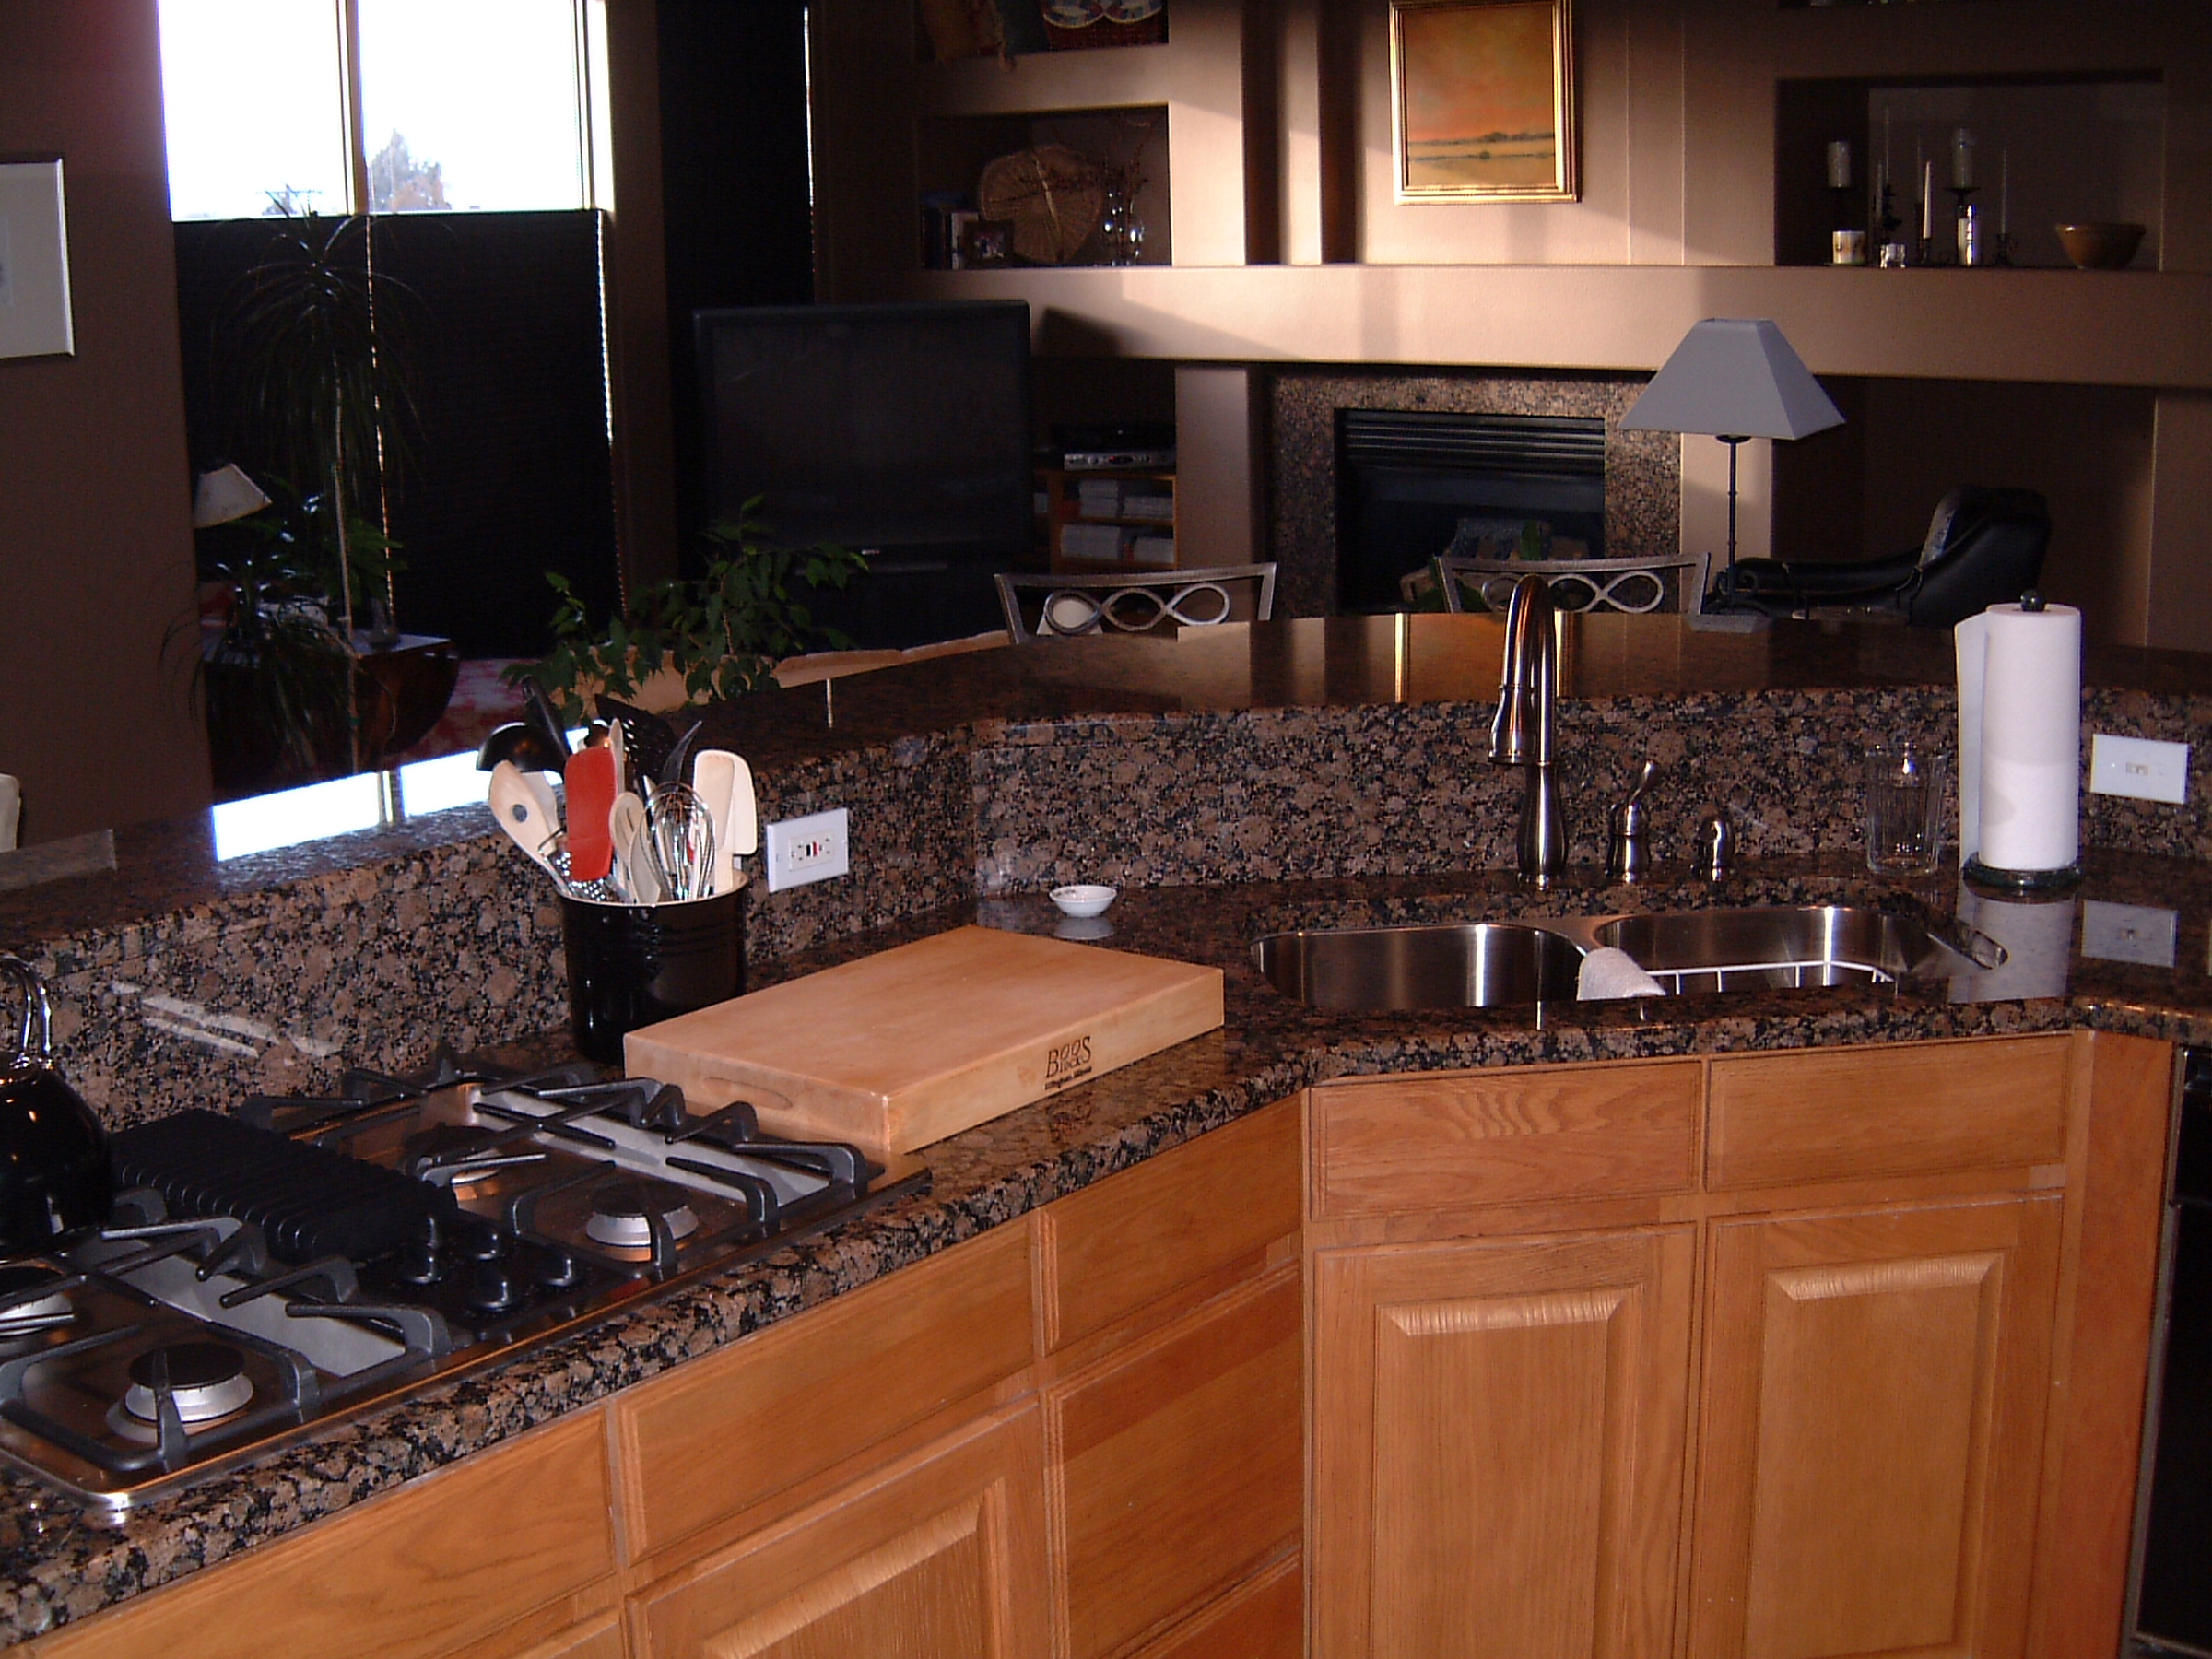 Kitchen Countertop Cabinets Don S Custom Boulder Countertops And Cabinets Kitchen Categories